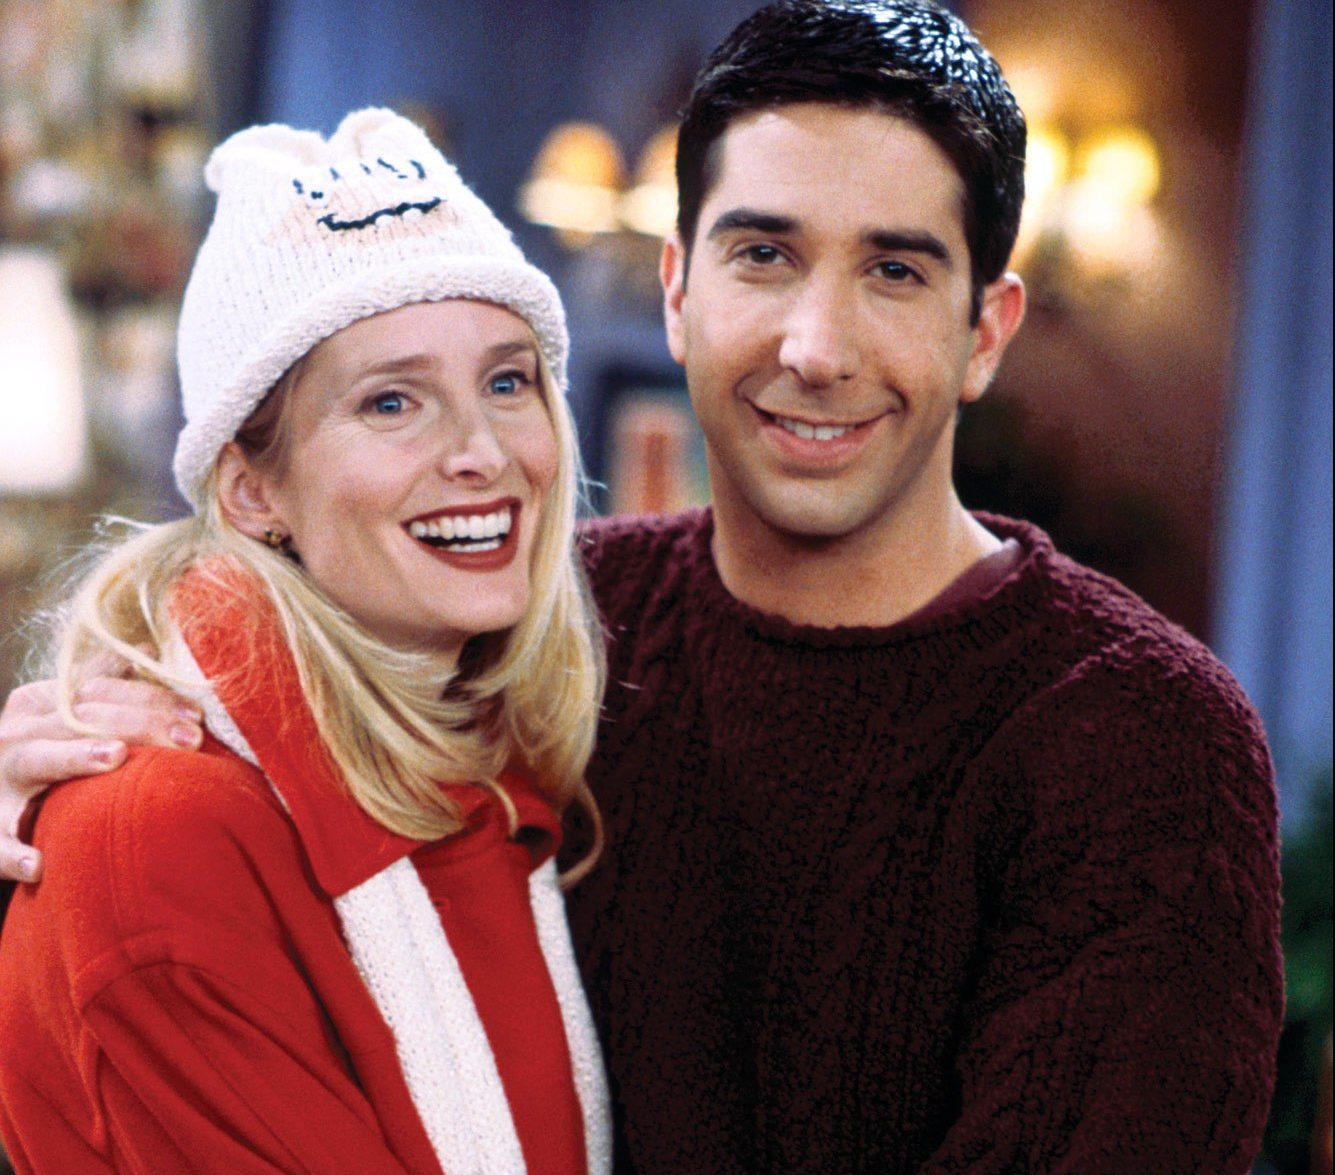 friends 51 e1621933465571 20 Reasons Why Ross In Friends Is Actually A Terrible Human Being